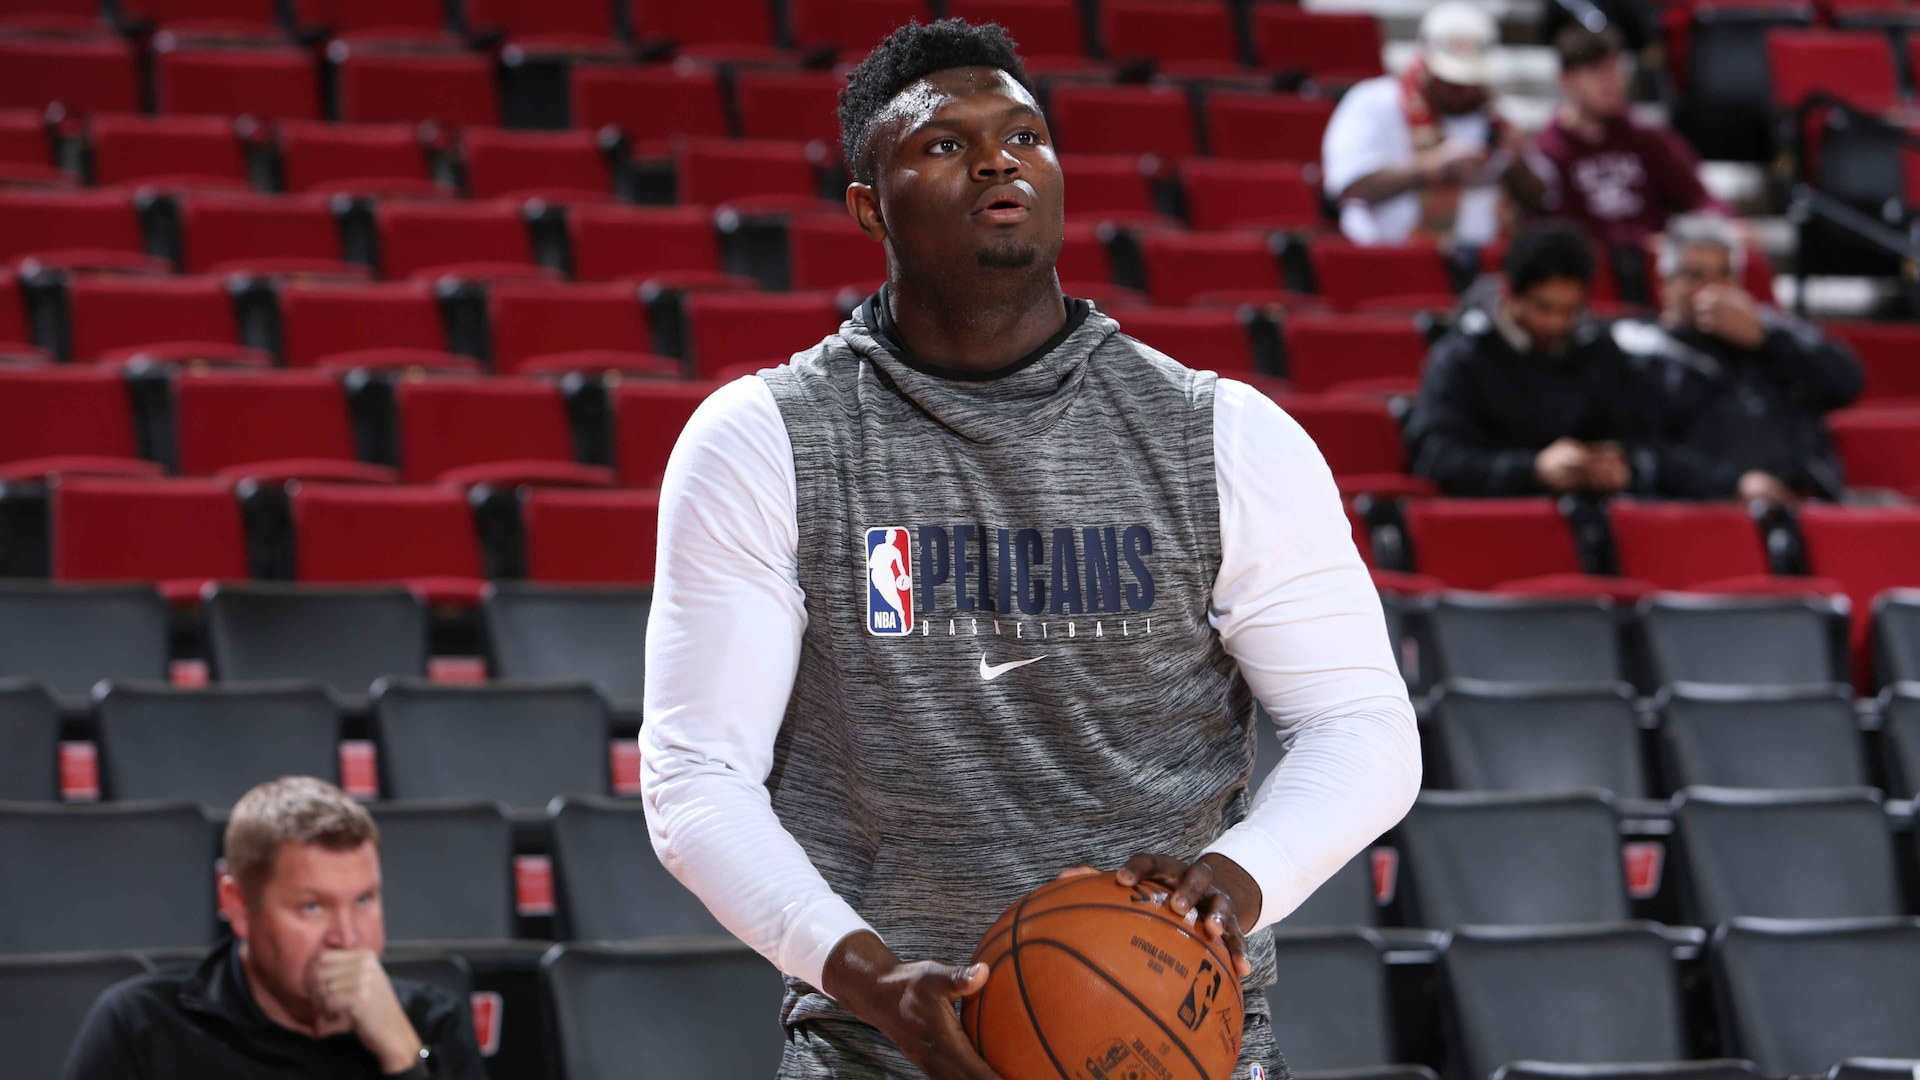 Pelicans rookie Zion Williamson goes through first full practice